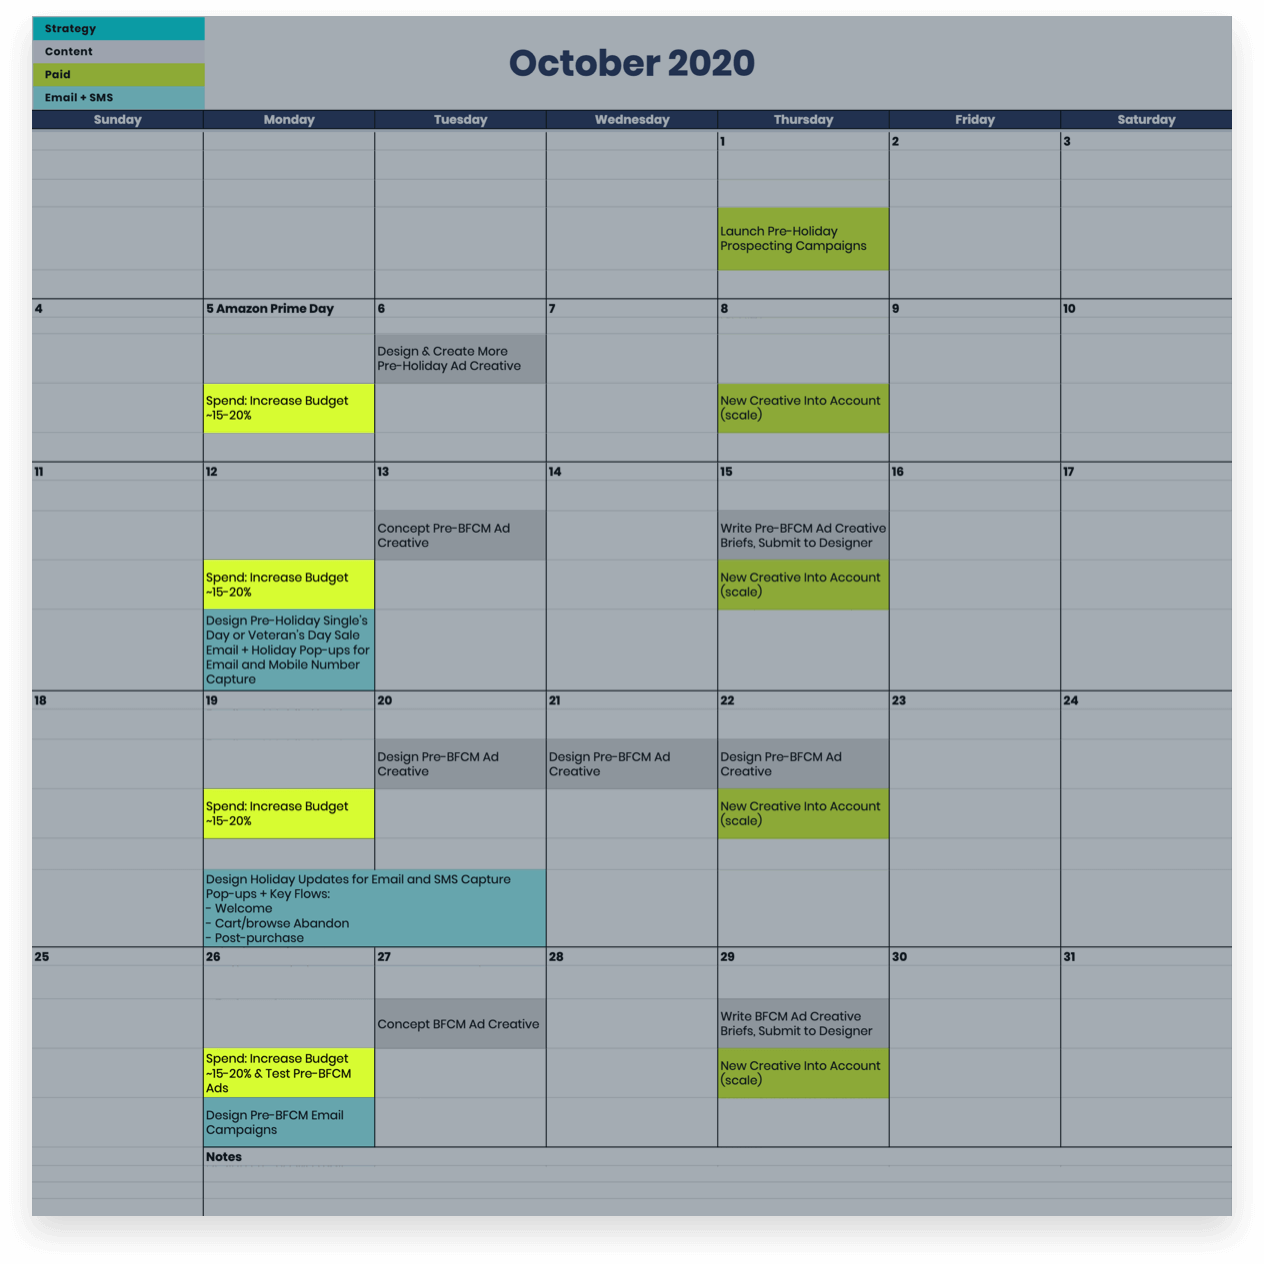 October Social Media Campaigns Calendar Budget Increases